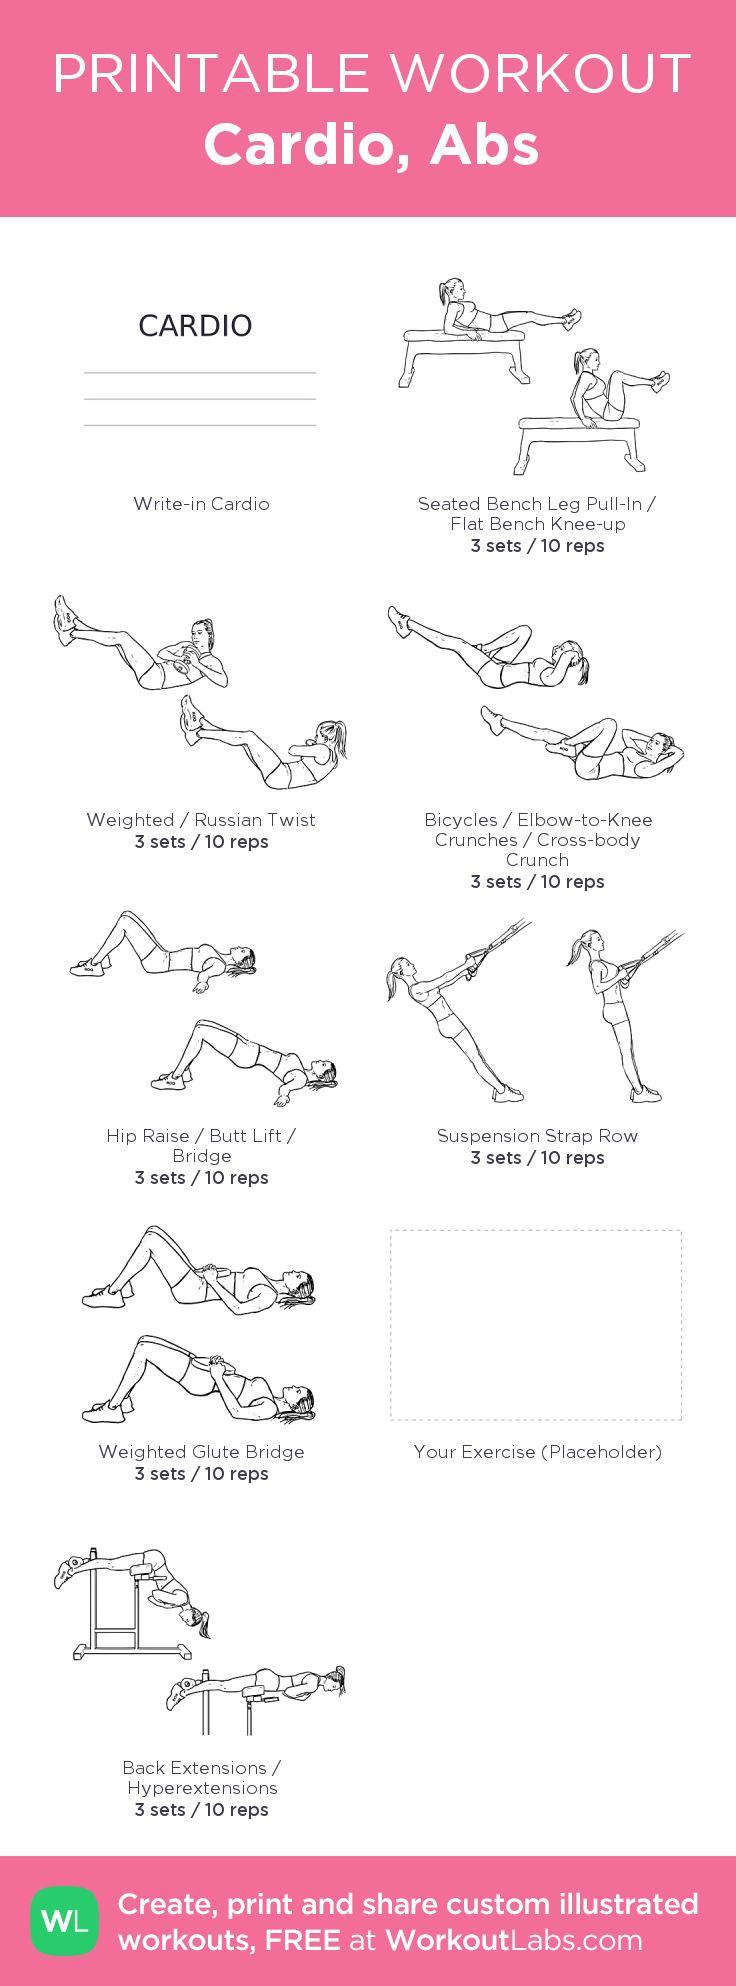 Cardio, Abs:my visual workout created at WorkoutLabs.com • Click through to customize and download as a FREE PDF! #customworkout